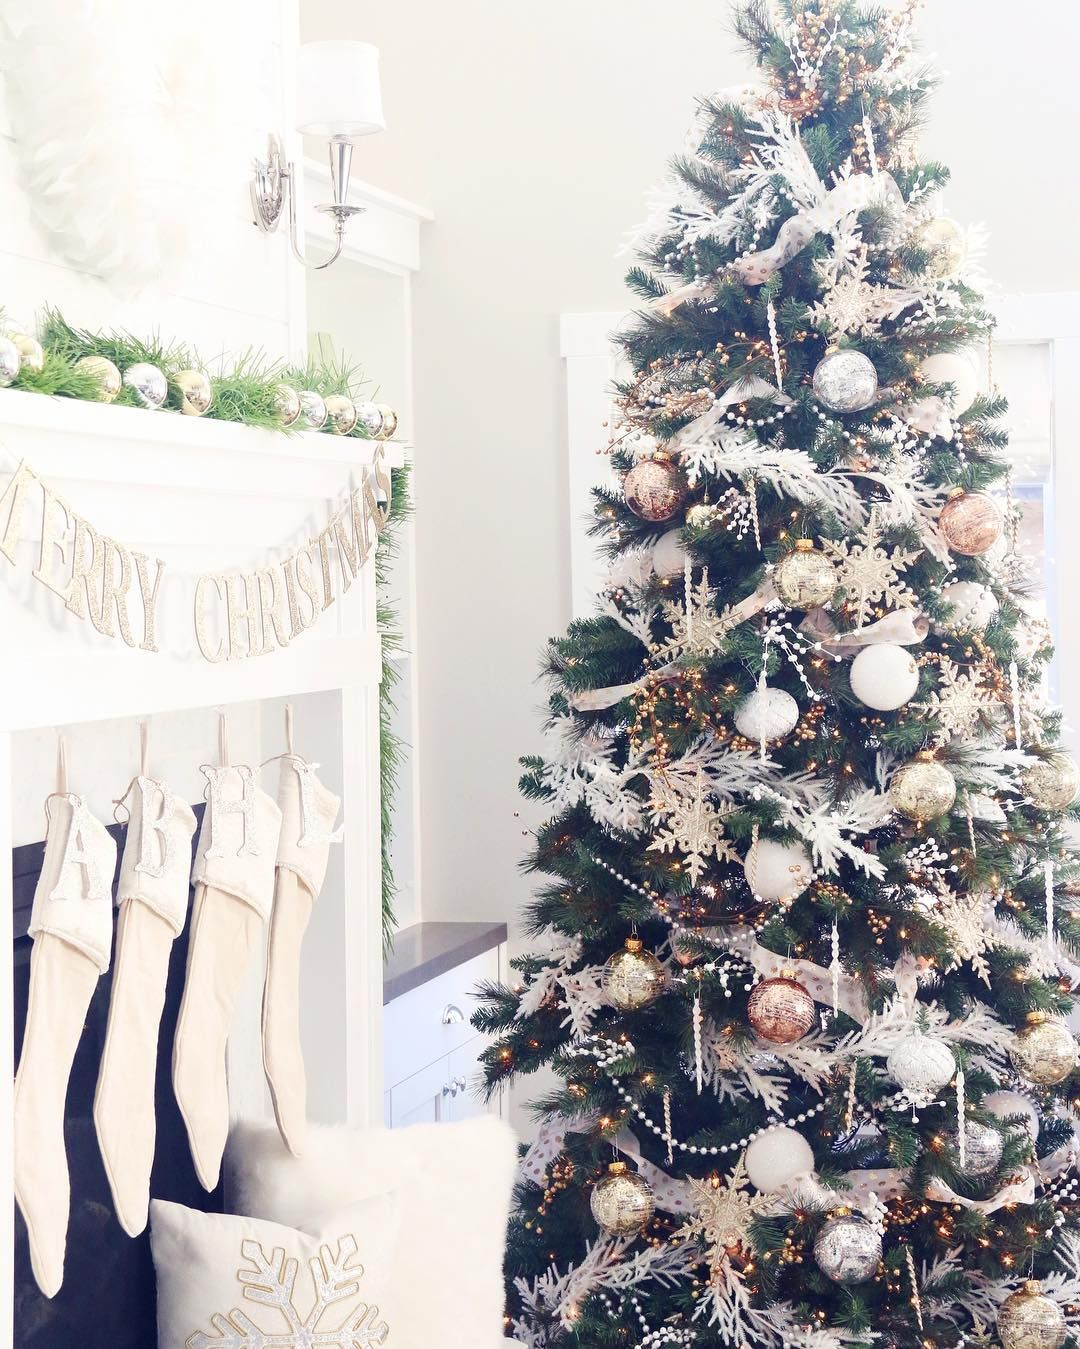 Pin by Yola Rivers on Christmas Everything | Pinterest | Christmas ...